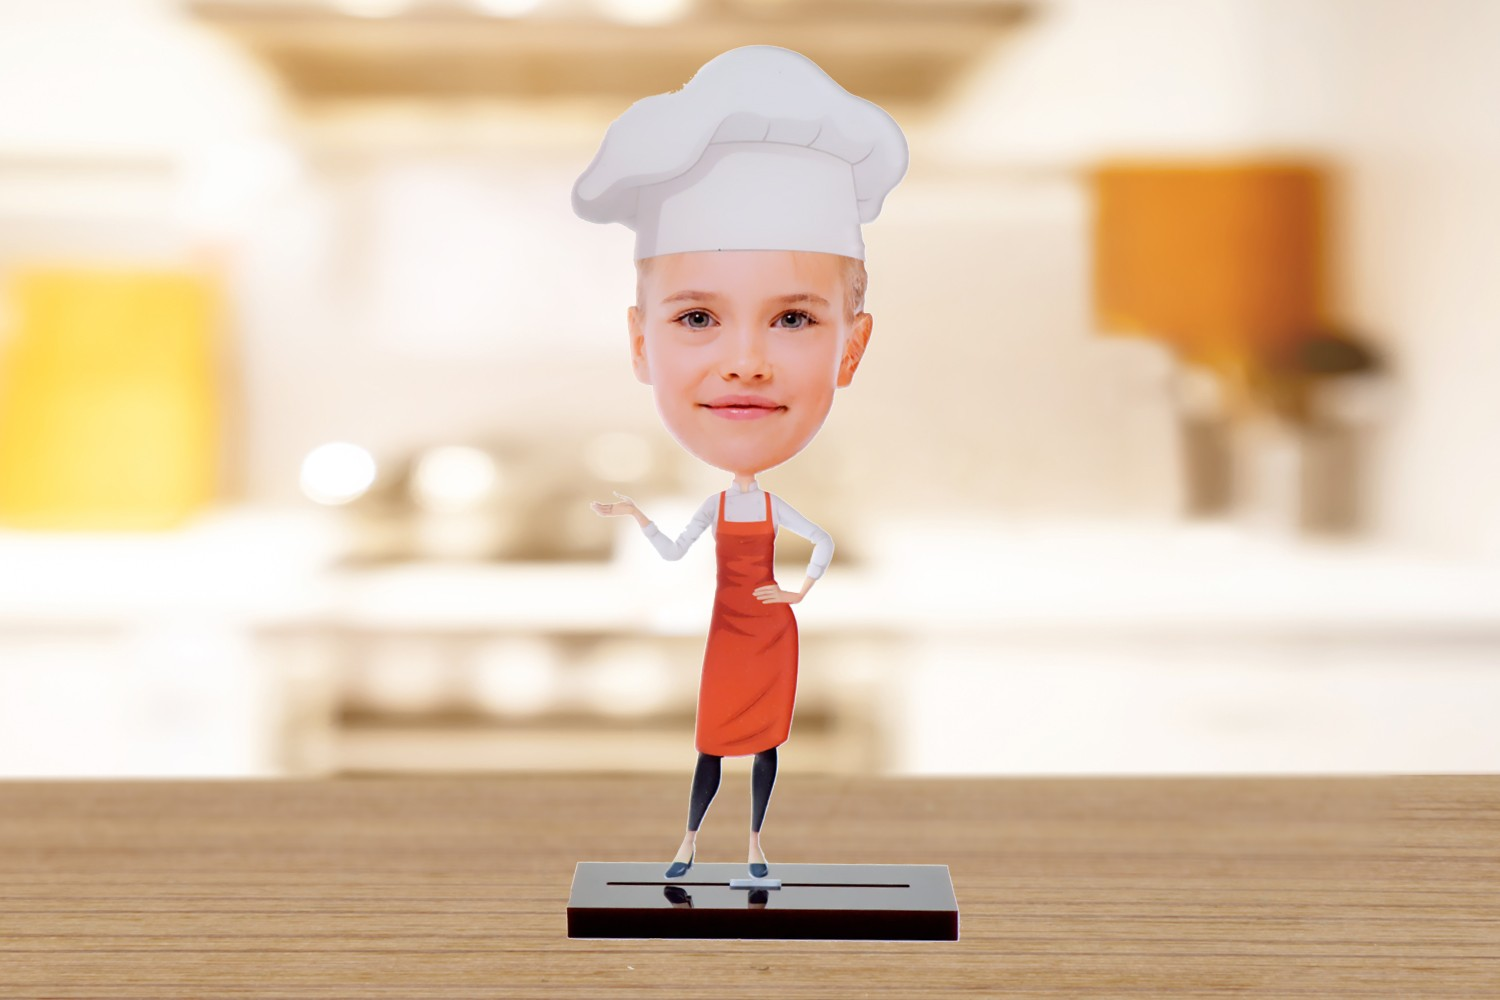 I am Chef Caricature